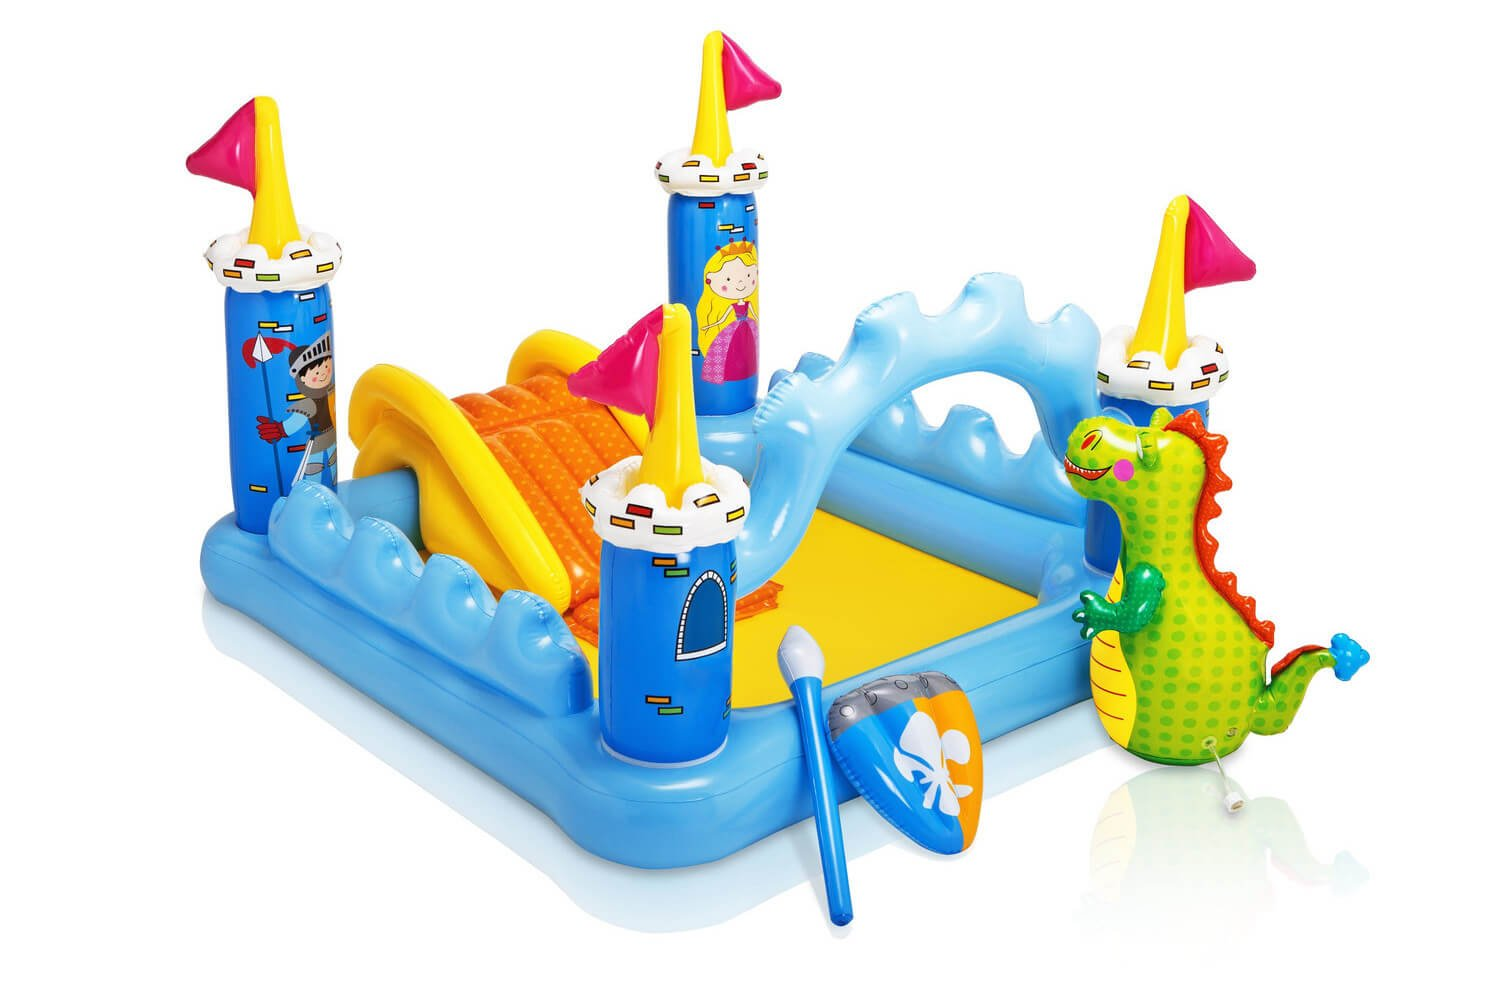 Here is a flashy and fun play place style inflatable pool for children. With all the accessories, it is a quite interesting and entertaining swimming experience for children.